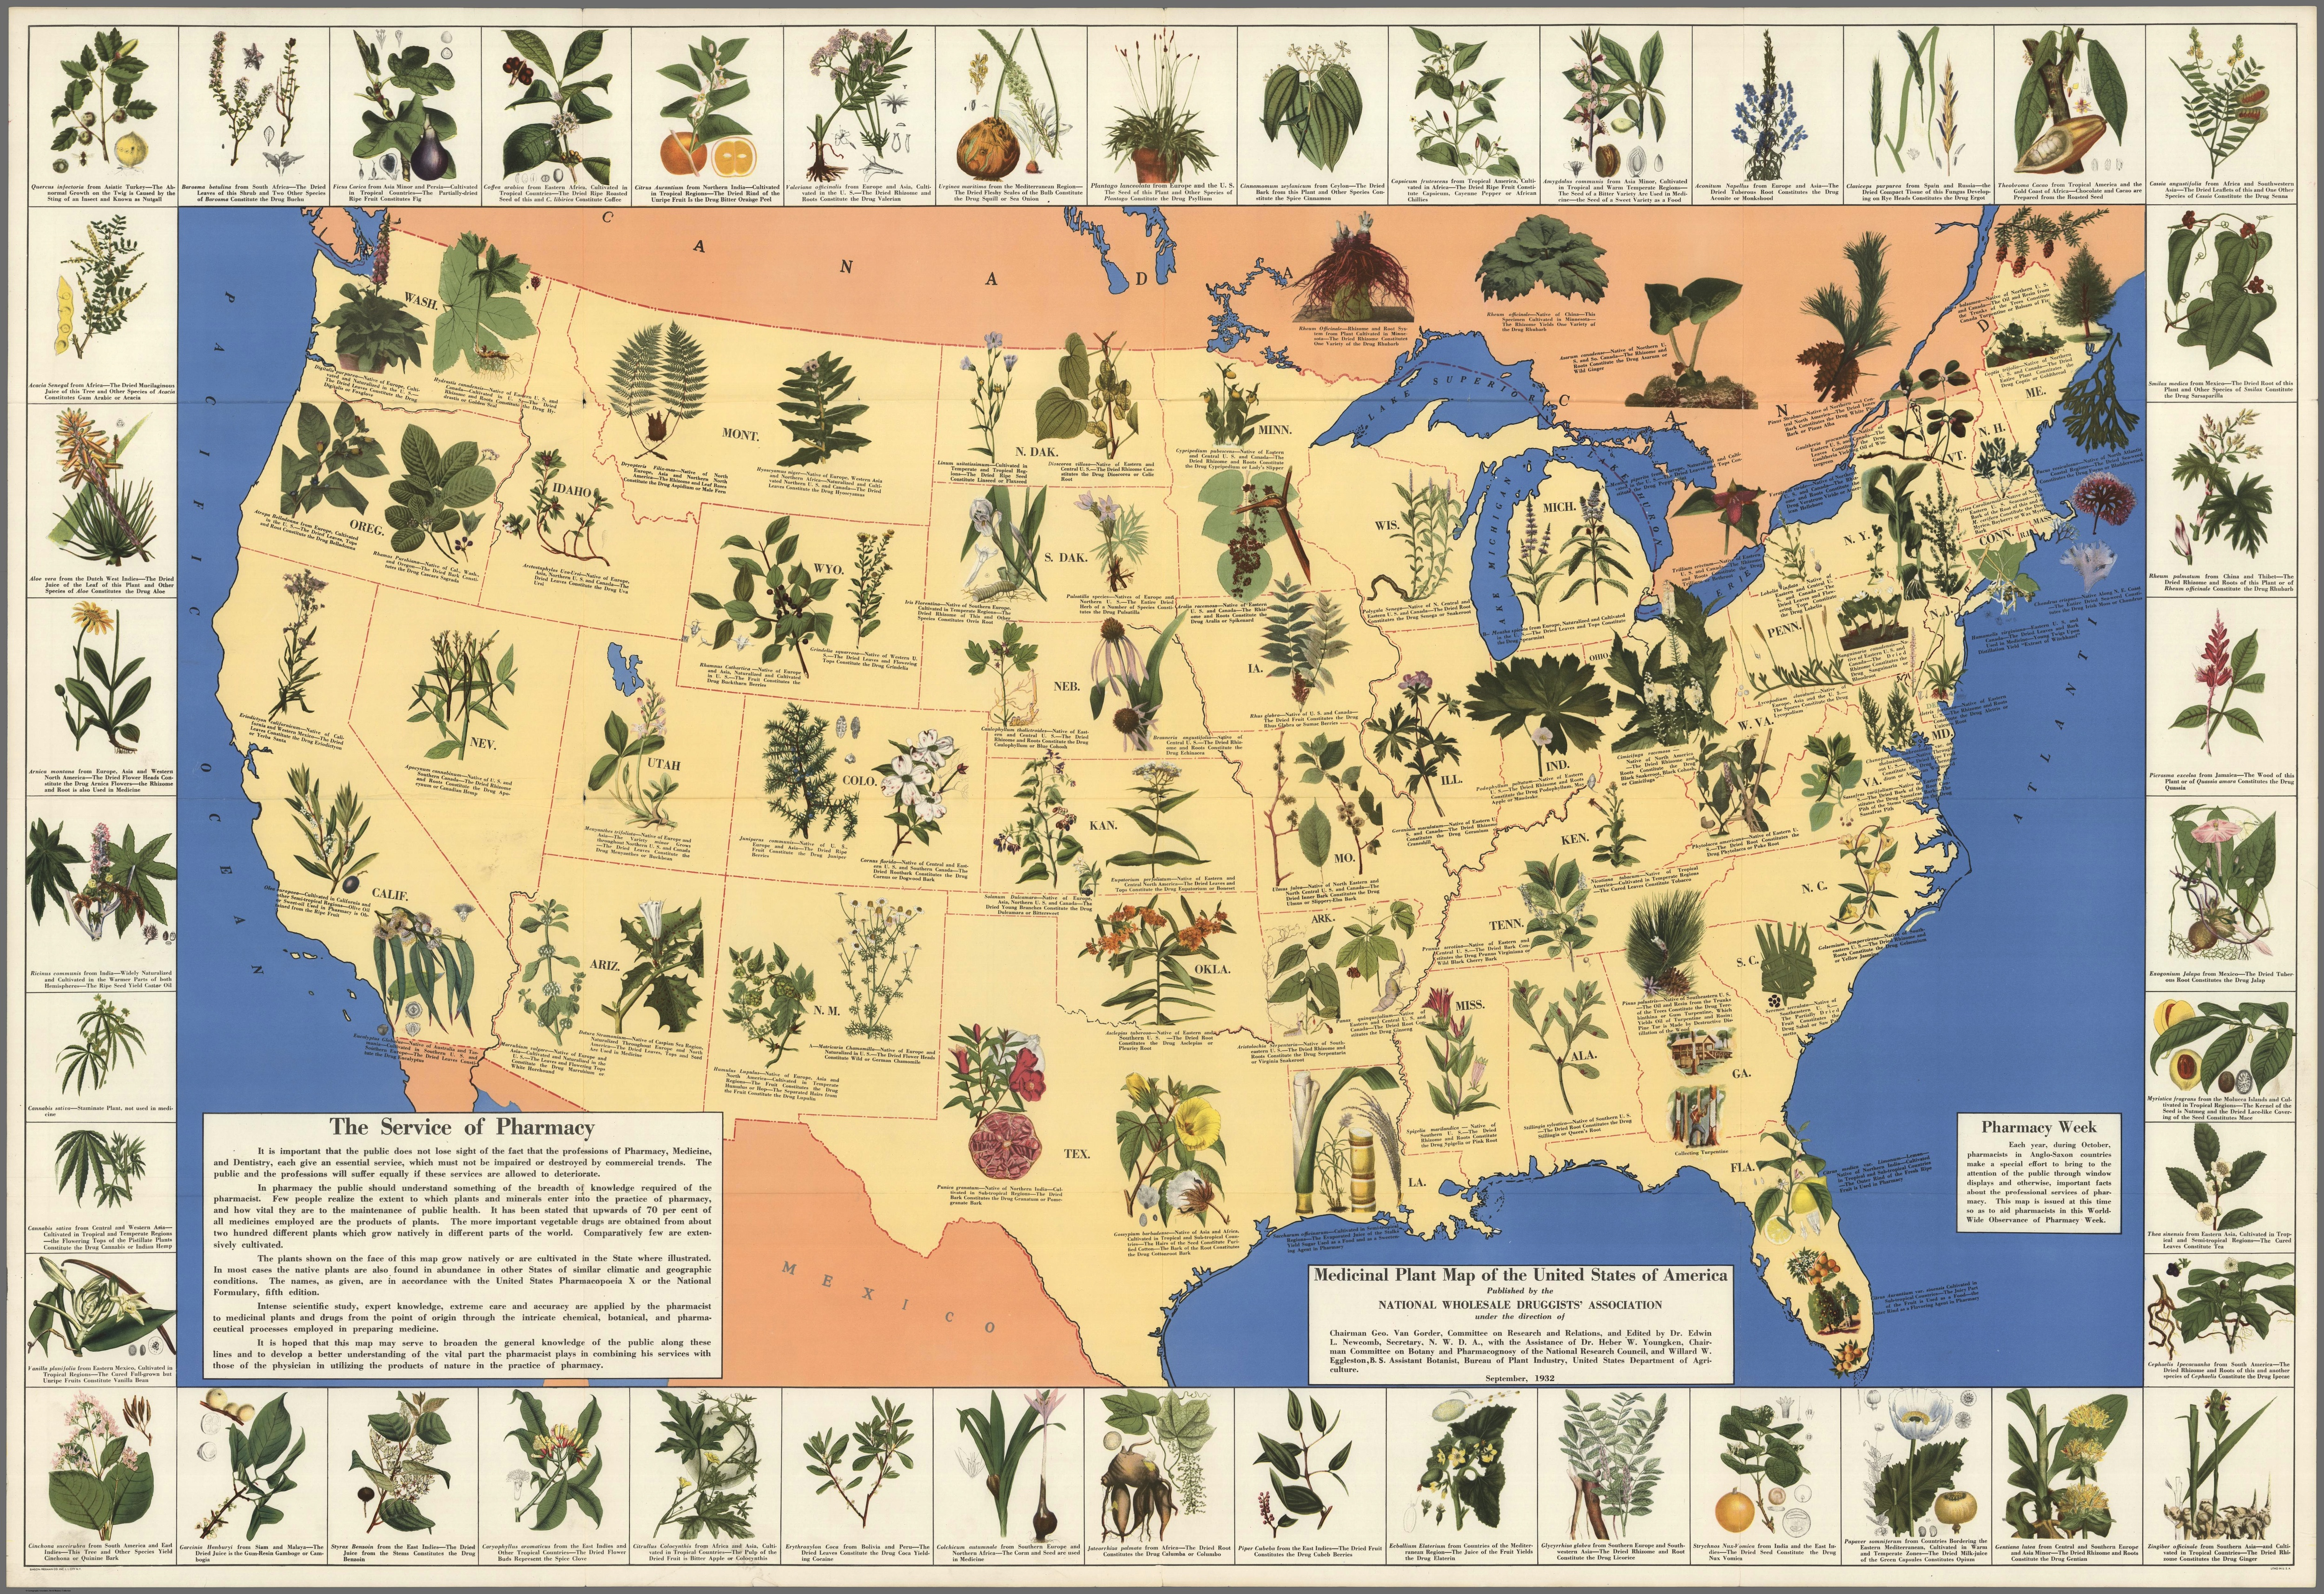 Fascinating 1930's Pharmacist Map of Herbal Cures Released To Public Pharma